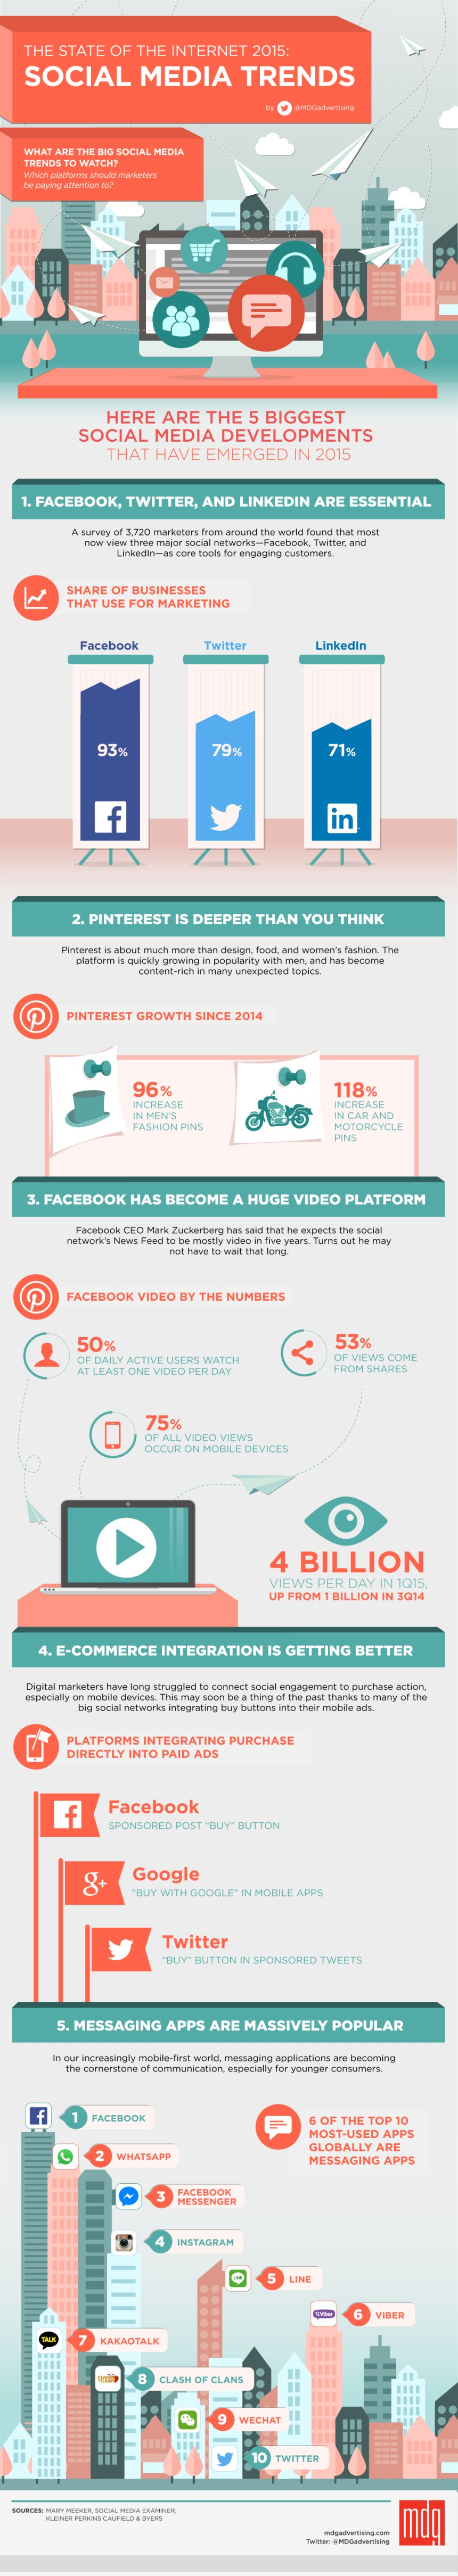 The State of the Internet 2015: Social Media Trends [Infographic]